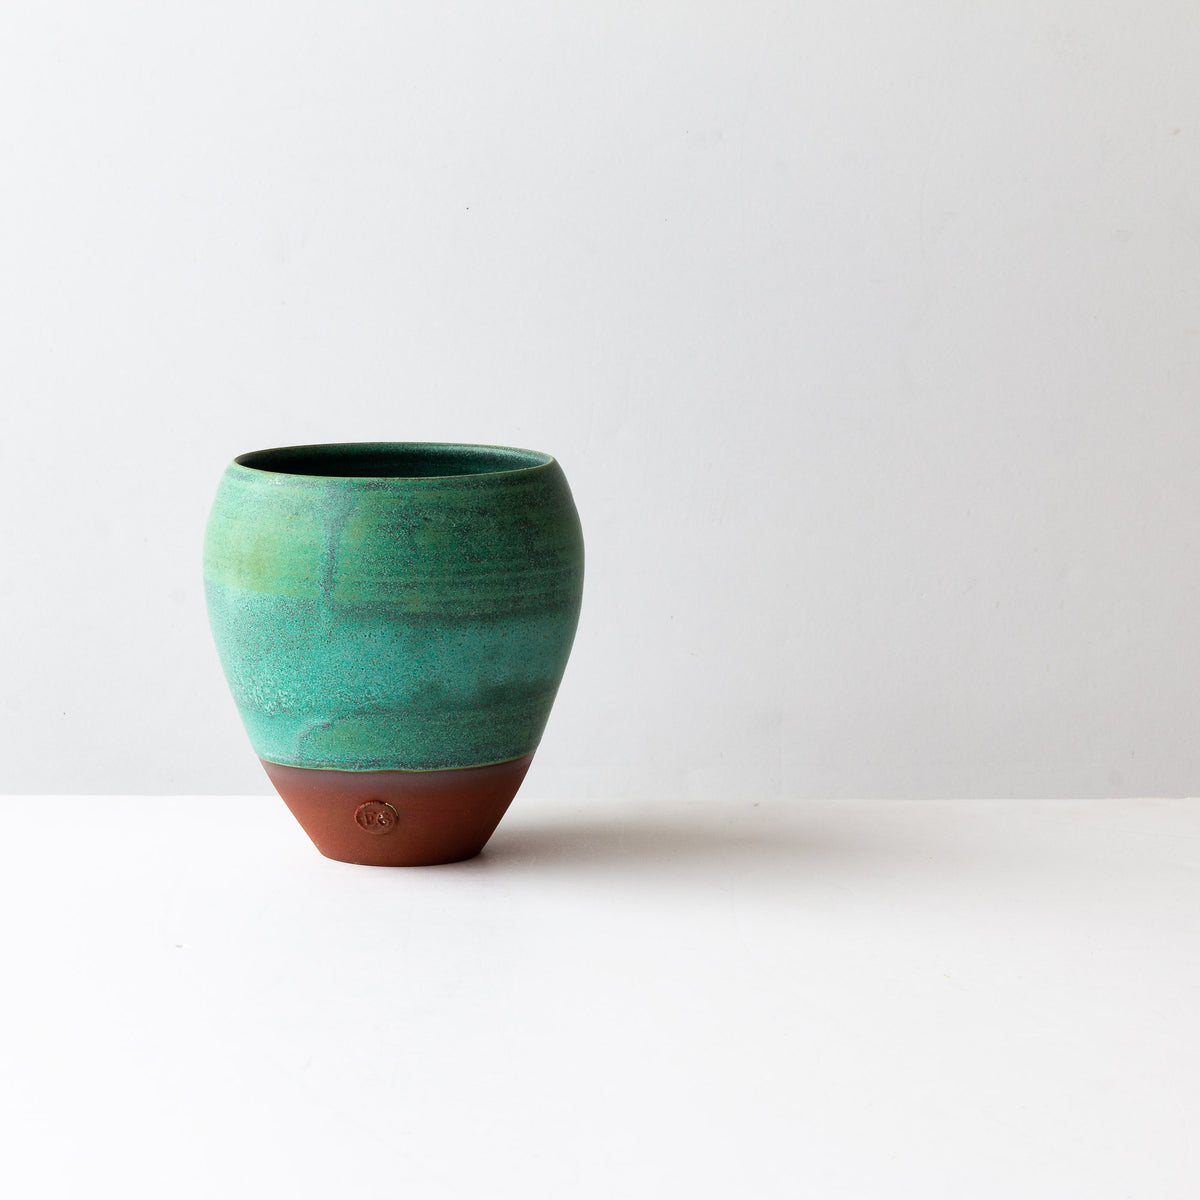 Turquoise & Terracotta Flower Vase - Handmade in Stoneware - Sold by Chic & Basta